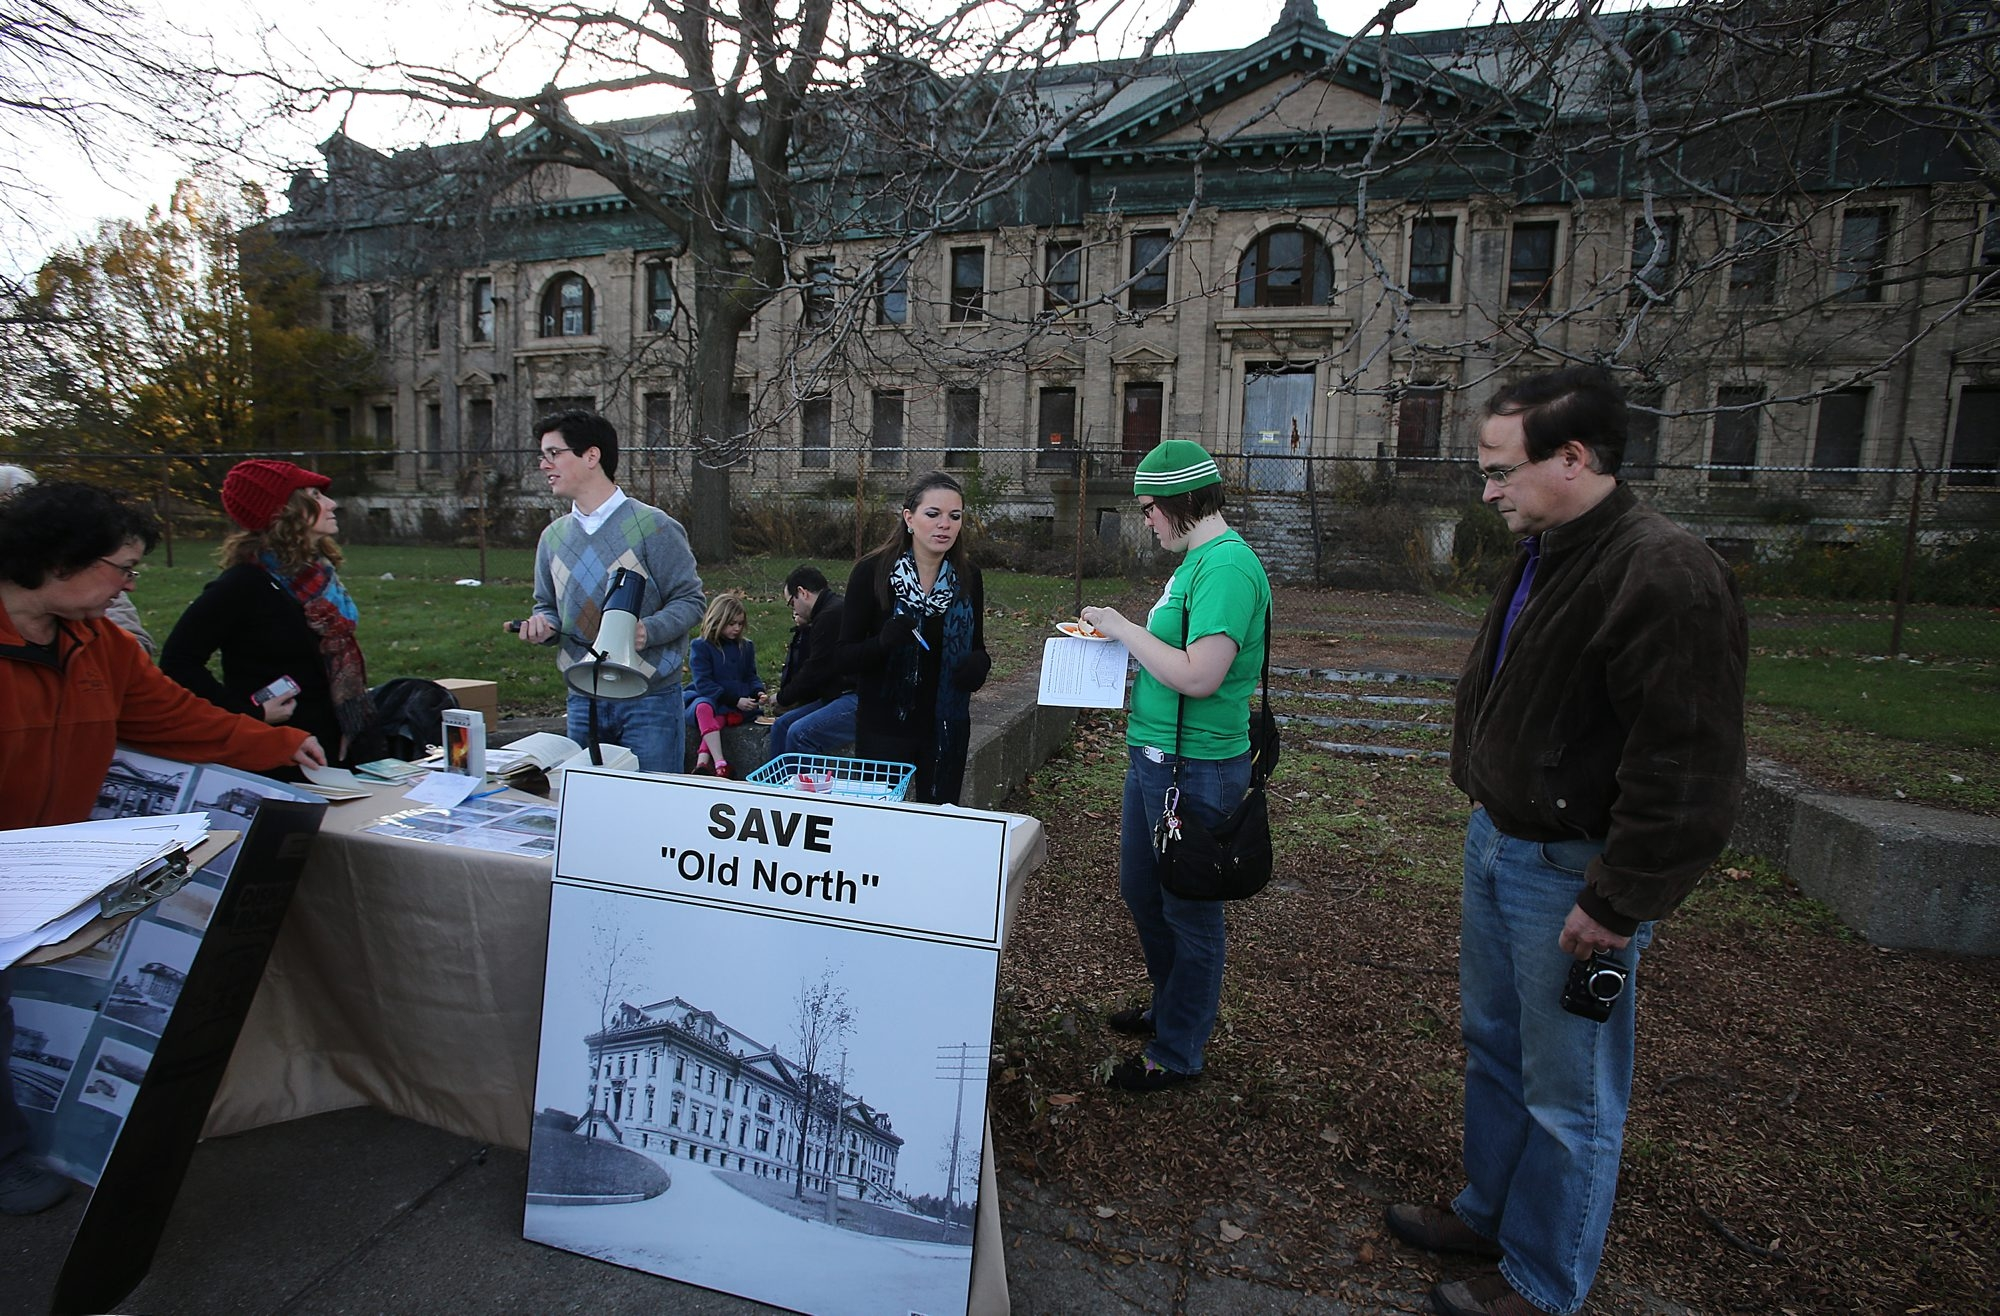 Members of the Lackawanna Industrial Heritage Group gathered outside the former Bethlehem Steel Administration Building Nov. 18, hoping to save it from demolition. (Charles Lewis / Buffalo News file photo)